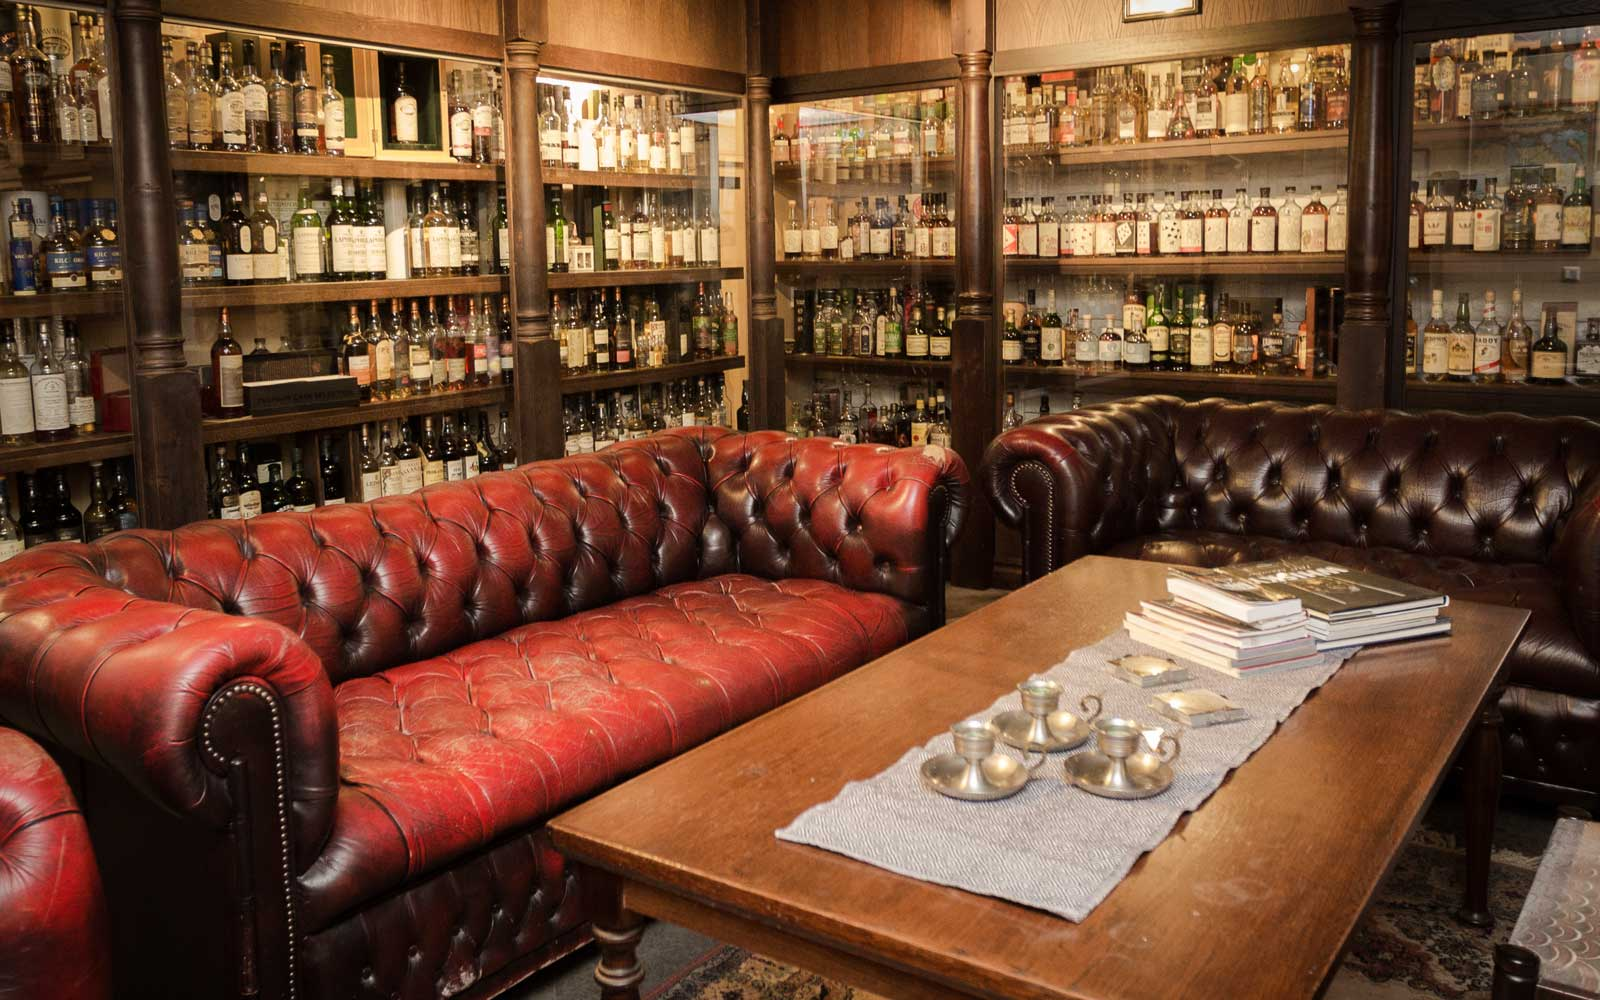 This Swedish Hotel Is Home to the World's Largest Whisky Collection